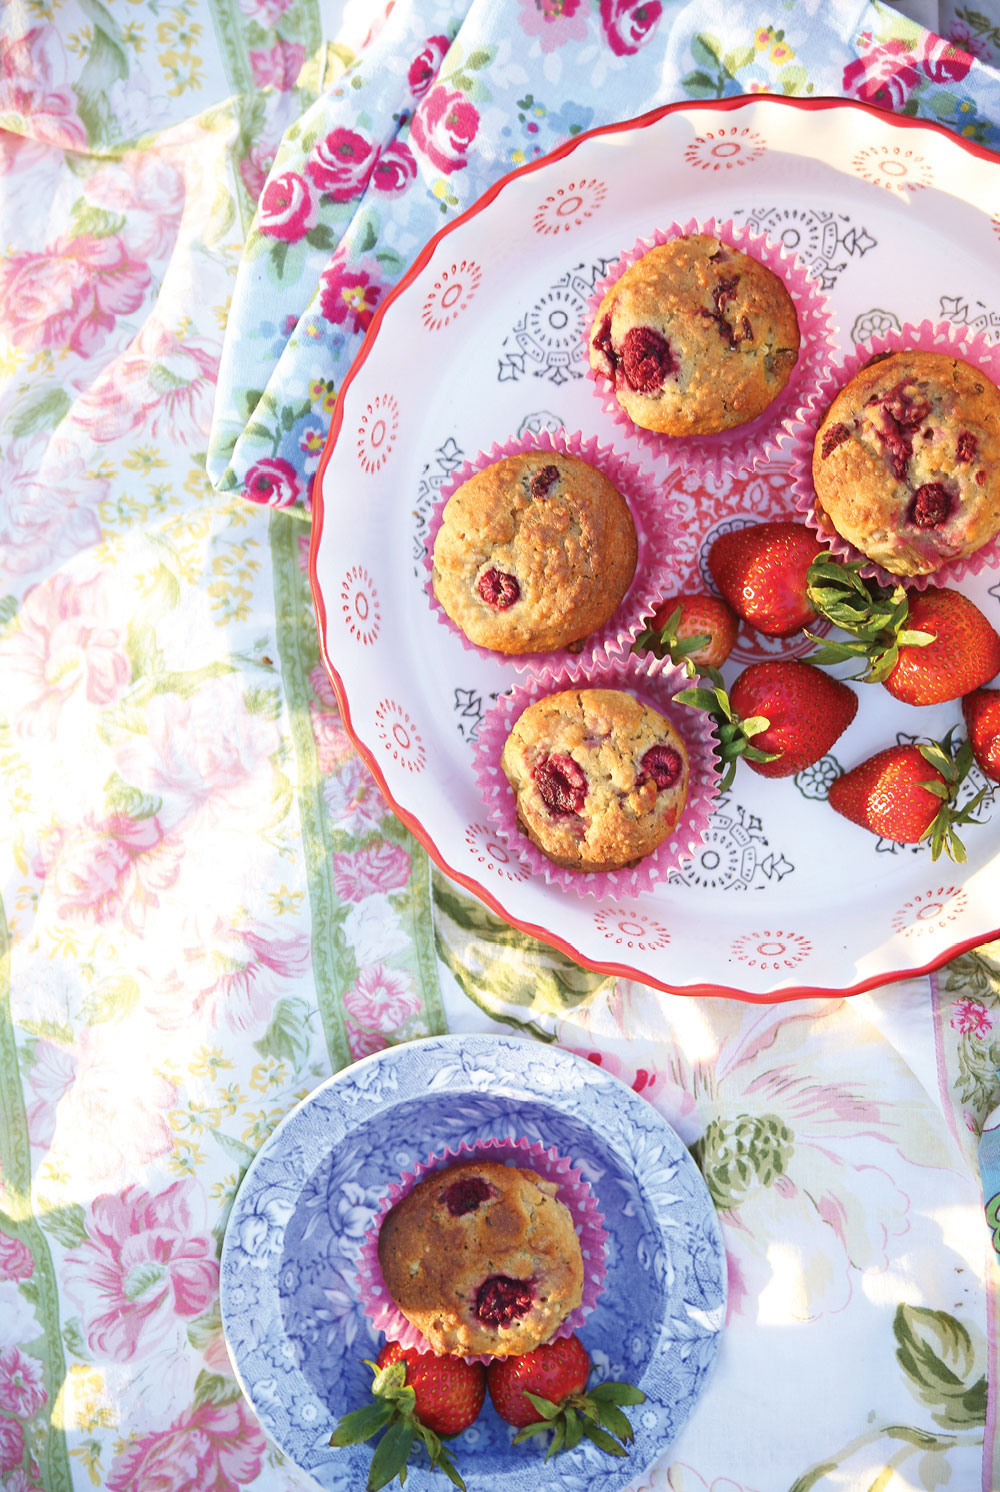 Ella-Leche-Pure-Ella-Raspberry-Lemon-Muffins-gluten-free-vegan-low-sugar